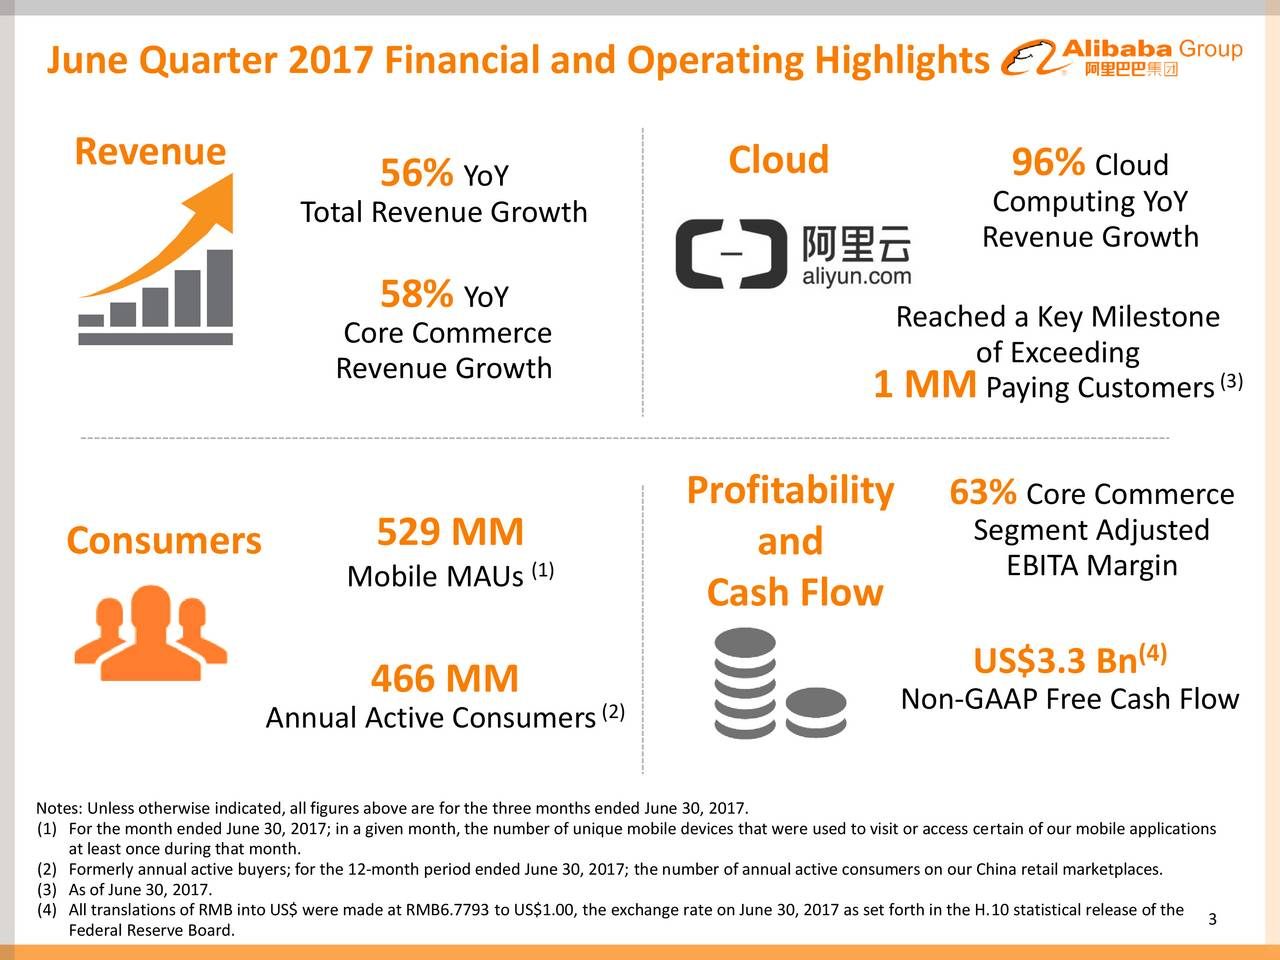 Revenue Cloud 96% Cloud 56% YoY Total Revenue Growth Computing YoY Revenue Growth 58% YoY Reached a Key Milestone Core Commerce of Exceeding Revenue Growth 1 MM Paying Customers(3) Profitability 63% Core Commerce Consumers 529 MM and Segment Adjusted Mobile MAUs (1) EBITA Margin Cash Flow US$3.3 Bn (4) 466 MM (2) Non-GAAP Free Cash Flow Annual Active Consumers Notes: Unless otherwise indicated, all figures above are for the three months ended June 30, 2017. (1) For the month ended June 30, 2017; in a given month, the number of unique mobile devices that were used to visit or access certain of our mobile applications (2) Formerly annual active buyers; for the 12-month period ended June 30, 2017; the number of annual active consumers on our China retail marketplaces. (3) As of June 30, 2017. (4Federal Reserve Board.RMB into US$ were made at RMB6.7793 to US$1.00, the exc3ange rate on June 30, 2017 as set forth in the H.10 statistical release of the